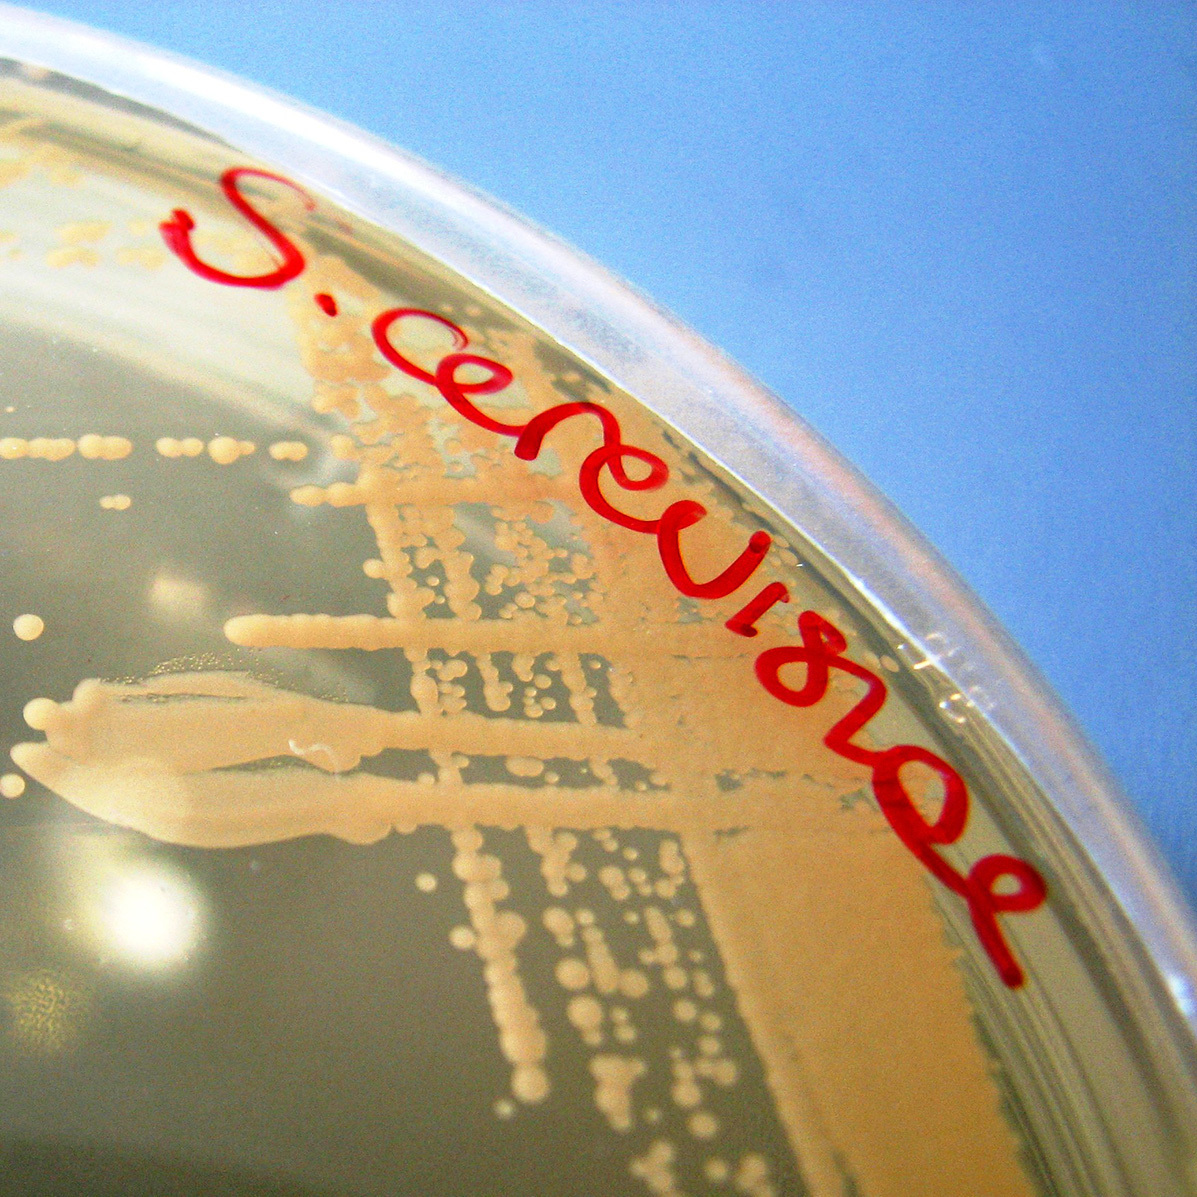 Portland is poised to make Saccharomyces cerevisiae the first microbe with official state recognition.